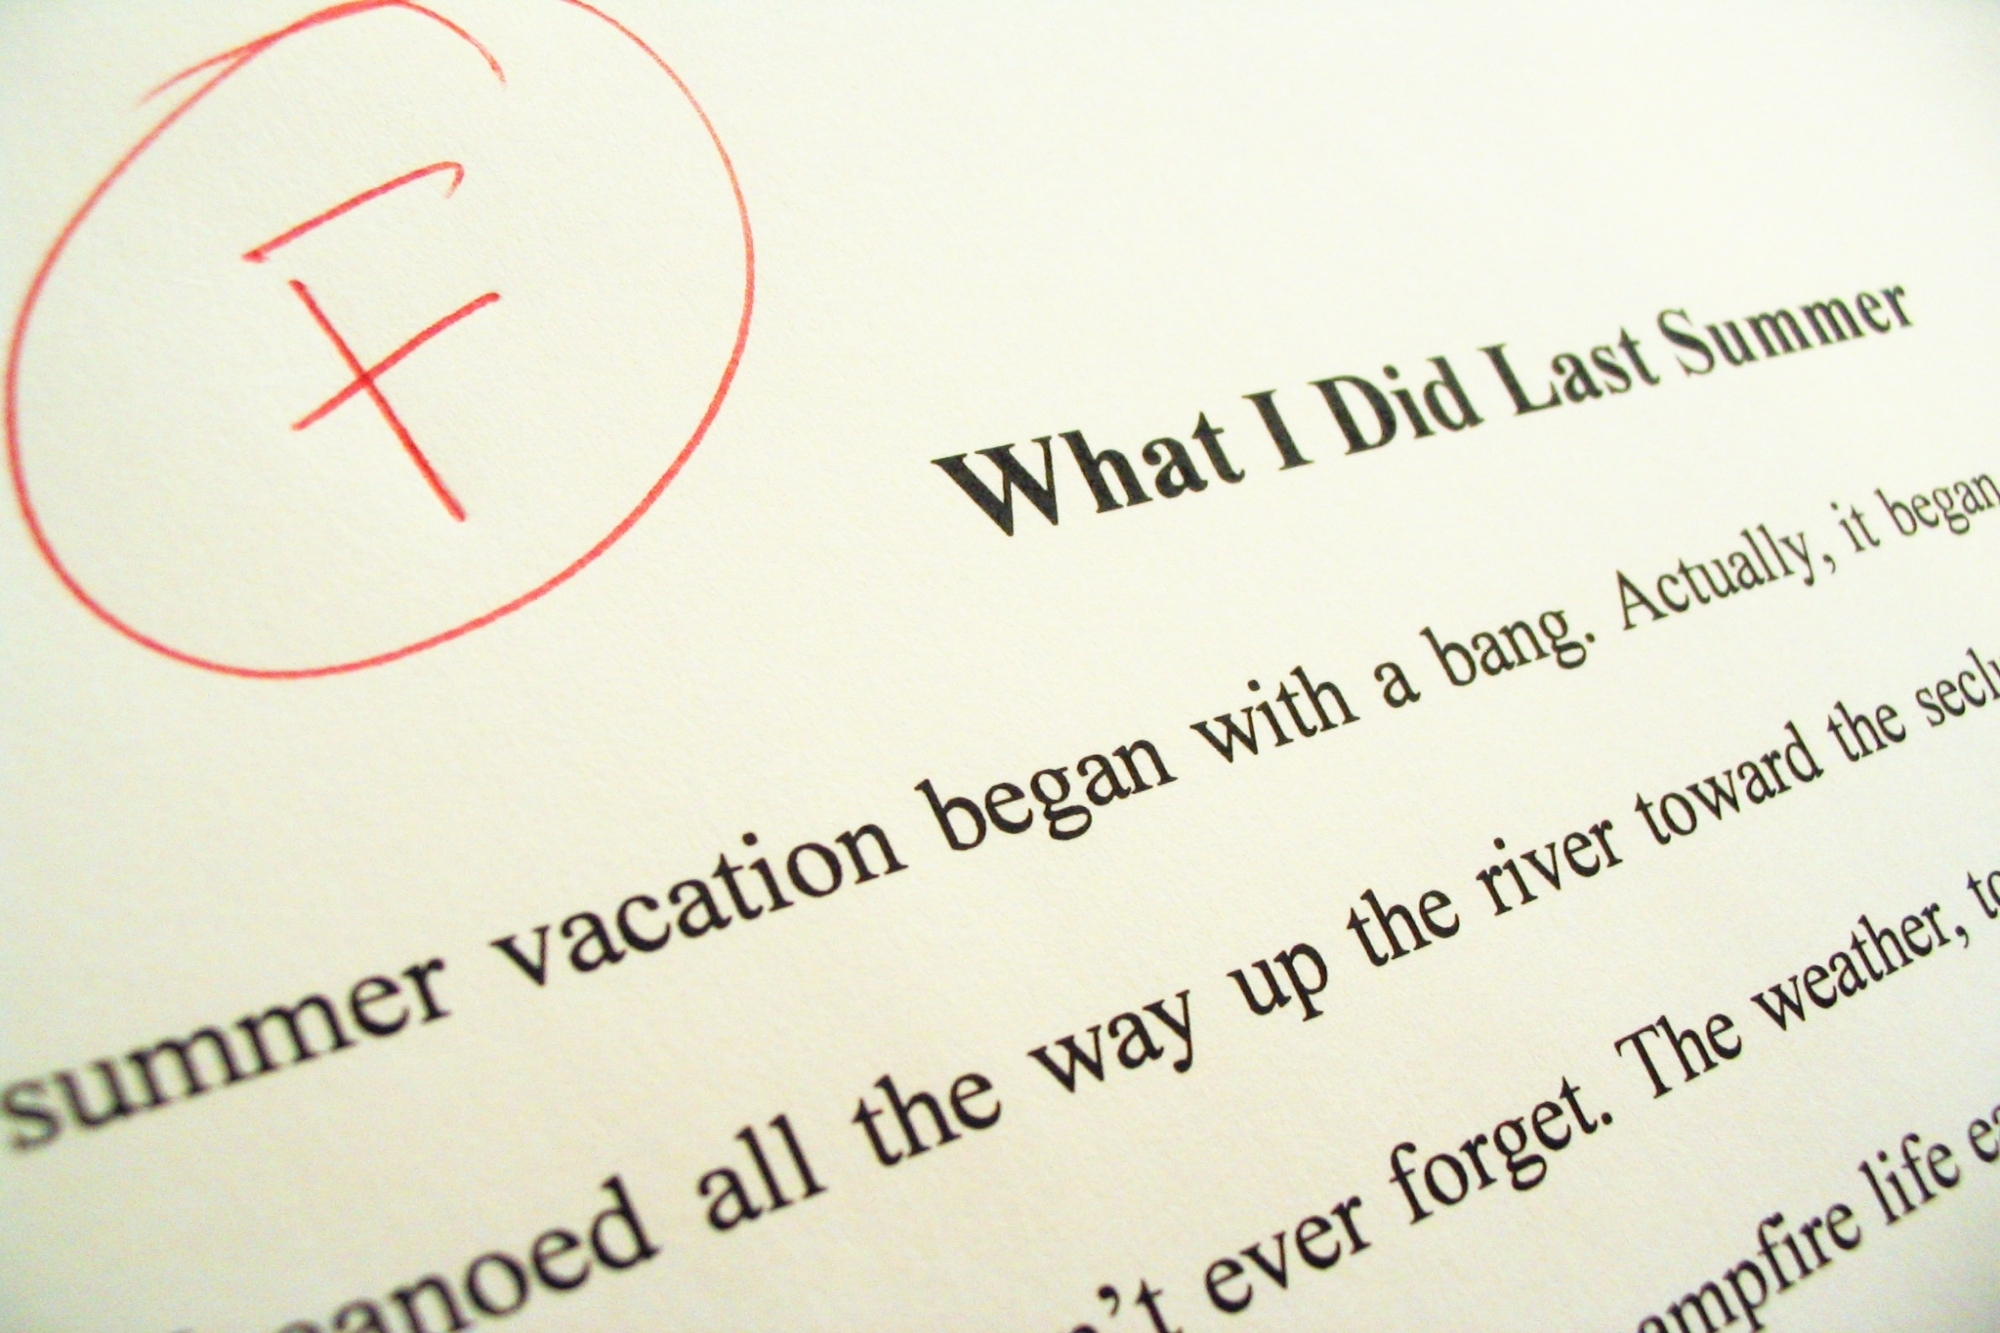 Failed term paper, things you should never say to a teacher